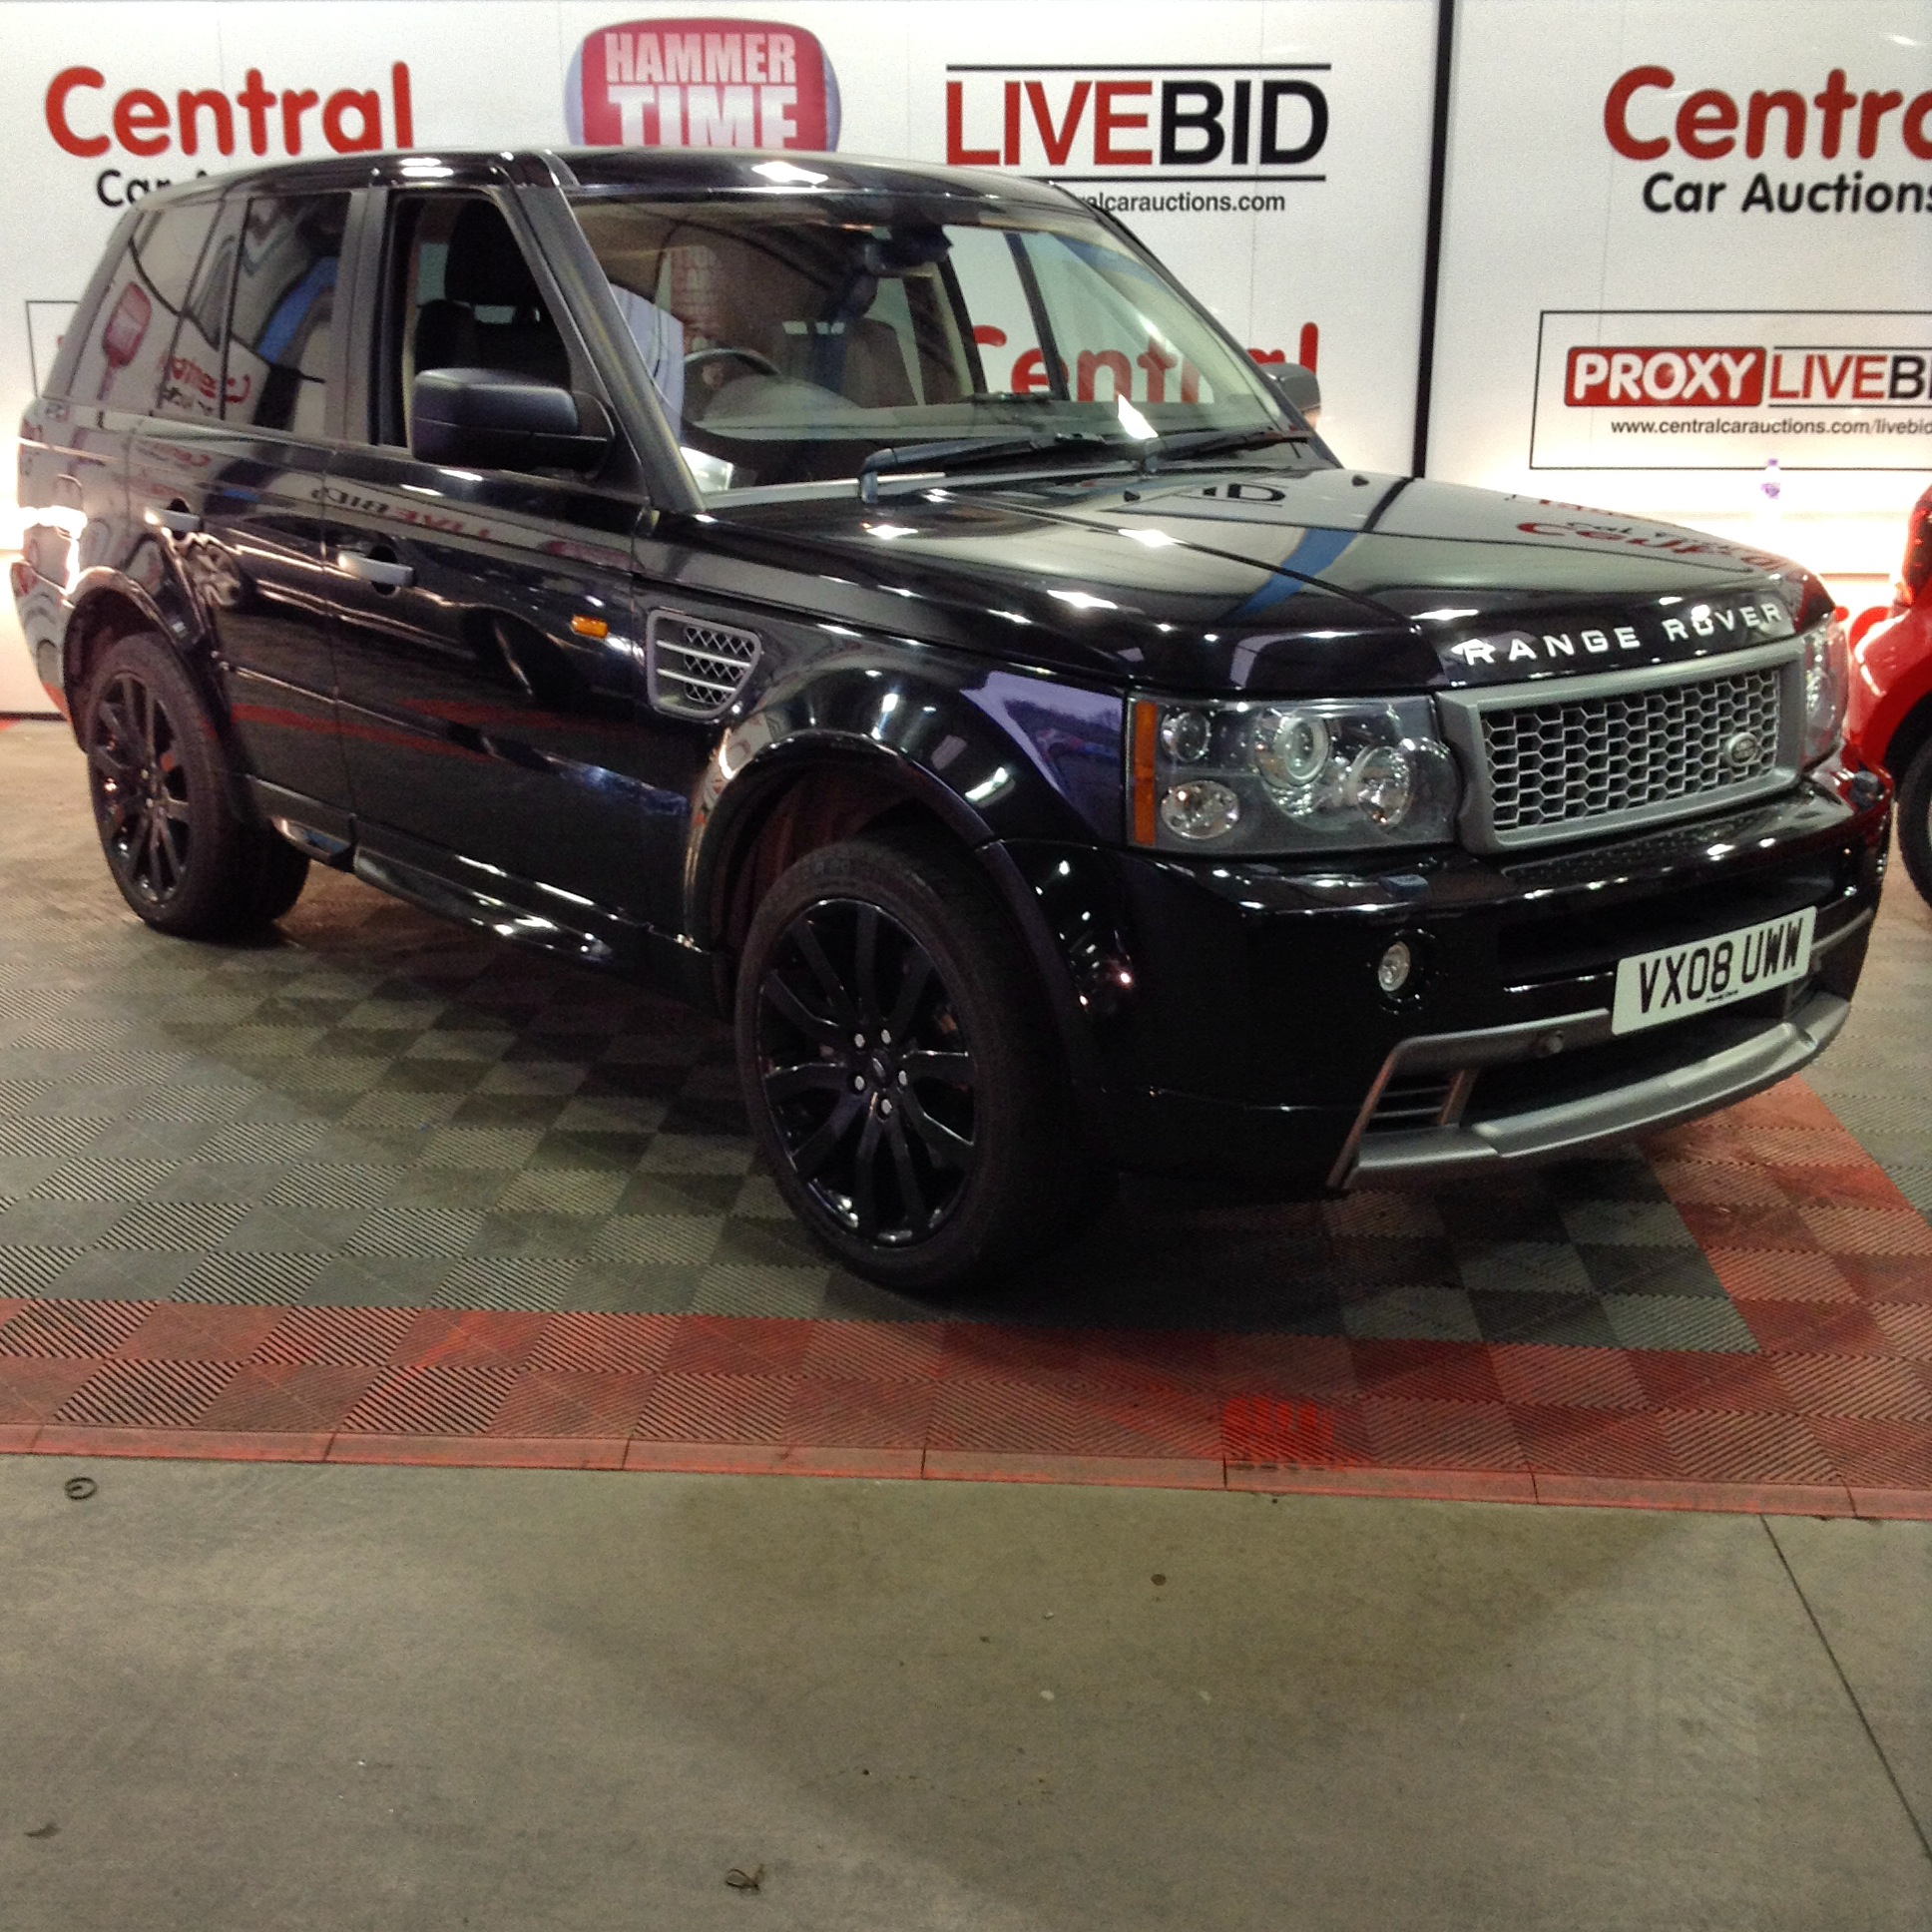 2008 08 plate Range Rover Sport Supercharged • Central Car Auctions